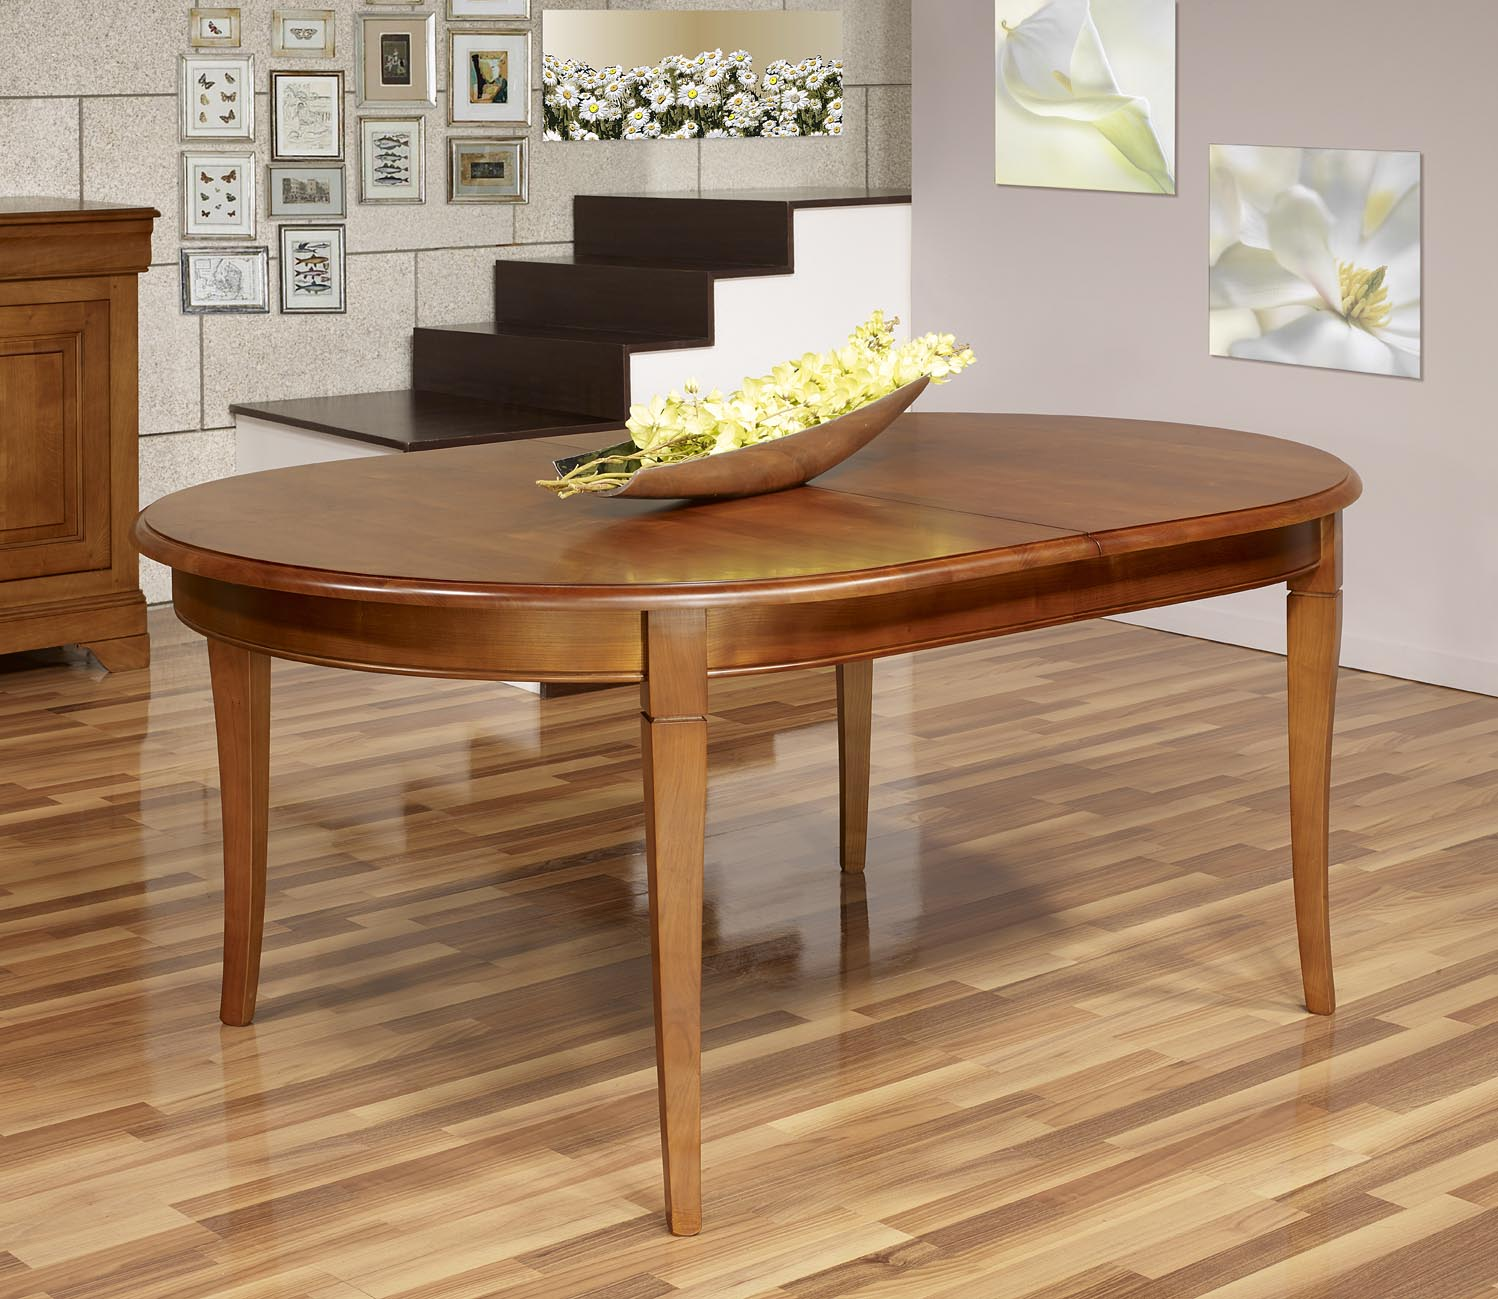 Table ovale constance 180 120 en merisier massif de style for Table ovale avec allonges